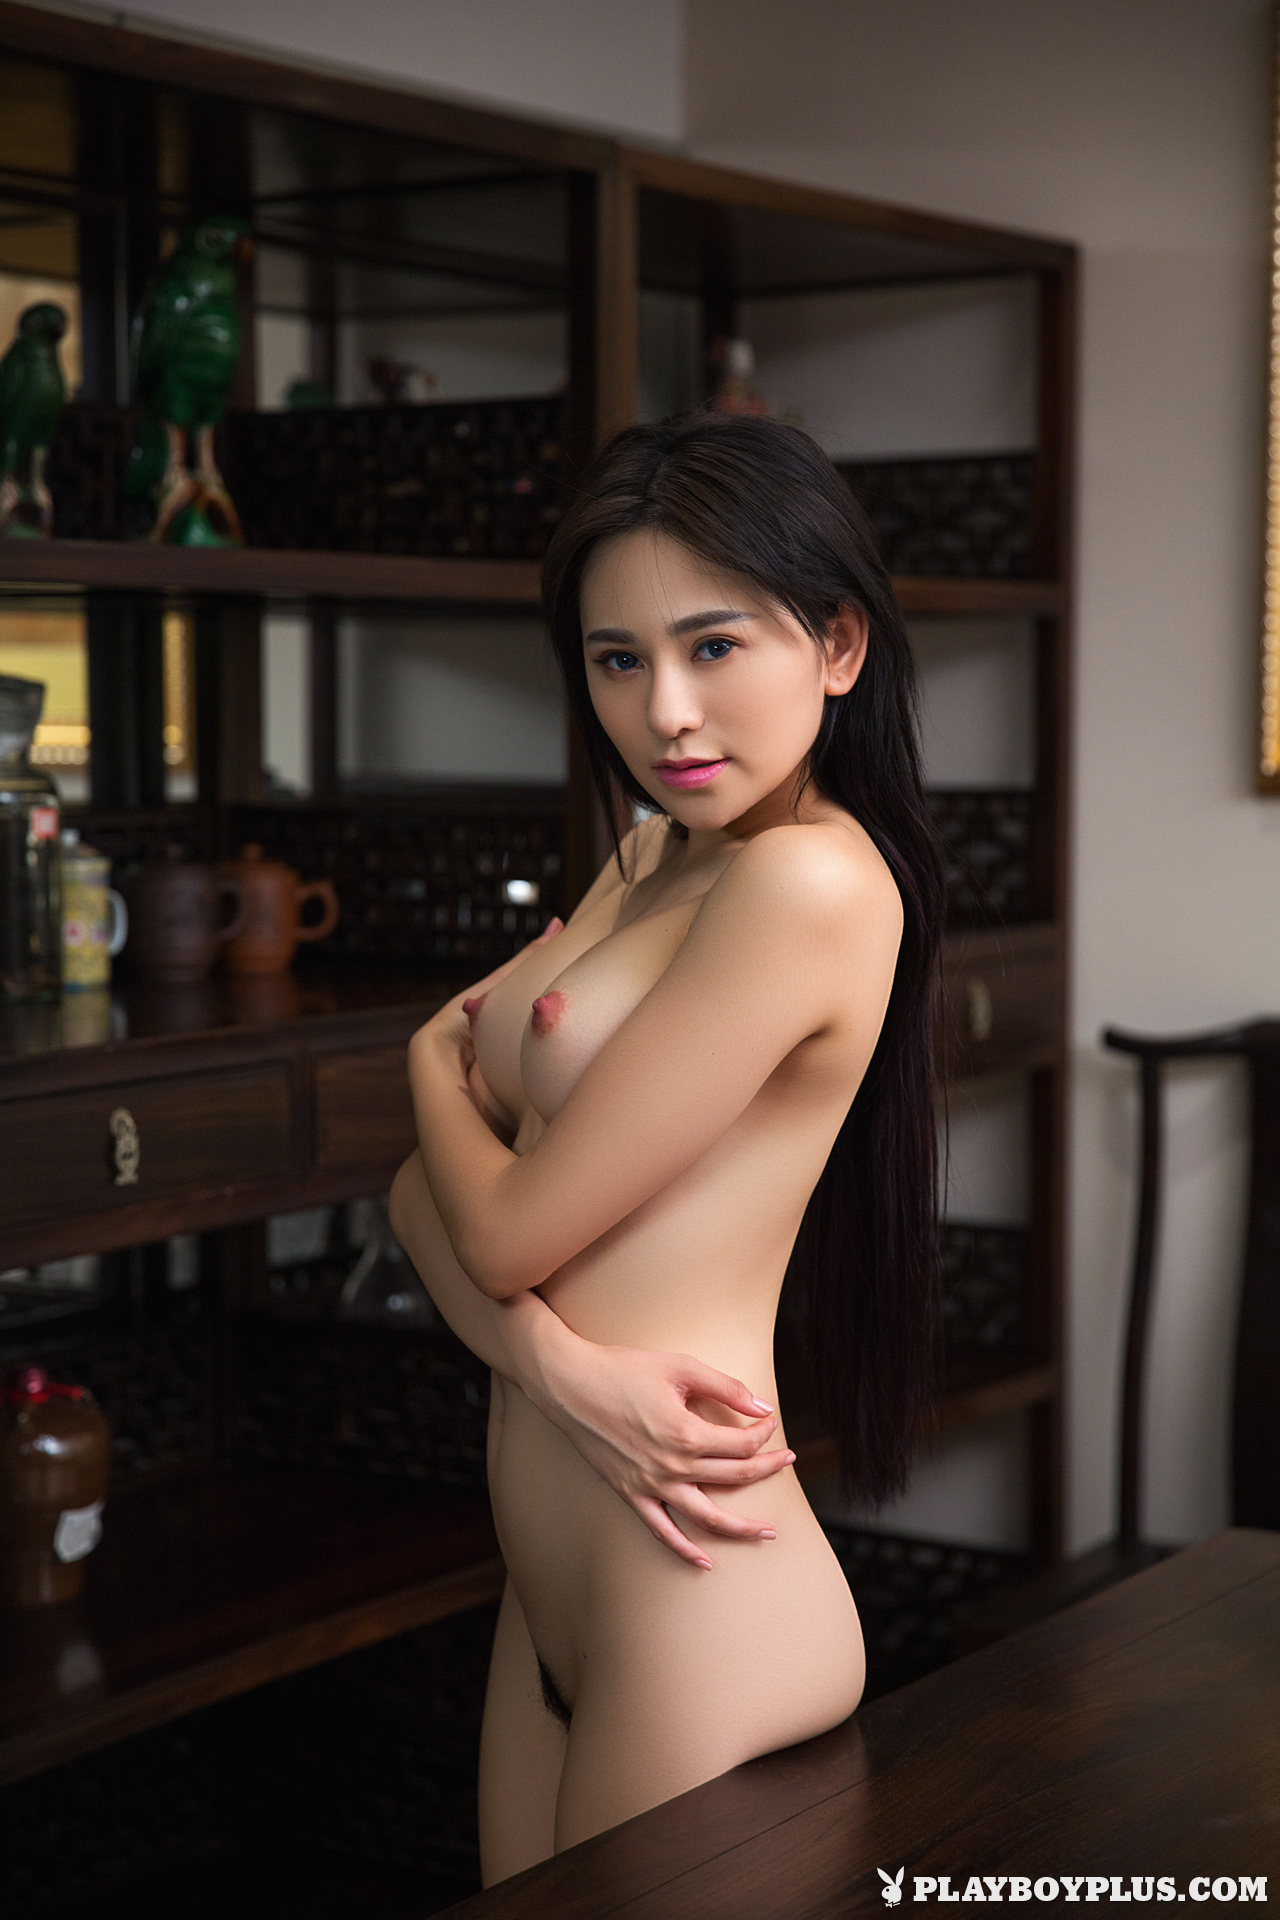 Chinese nudeModel  wu-muxi-chinese-model-nude-playboy-23